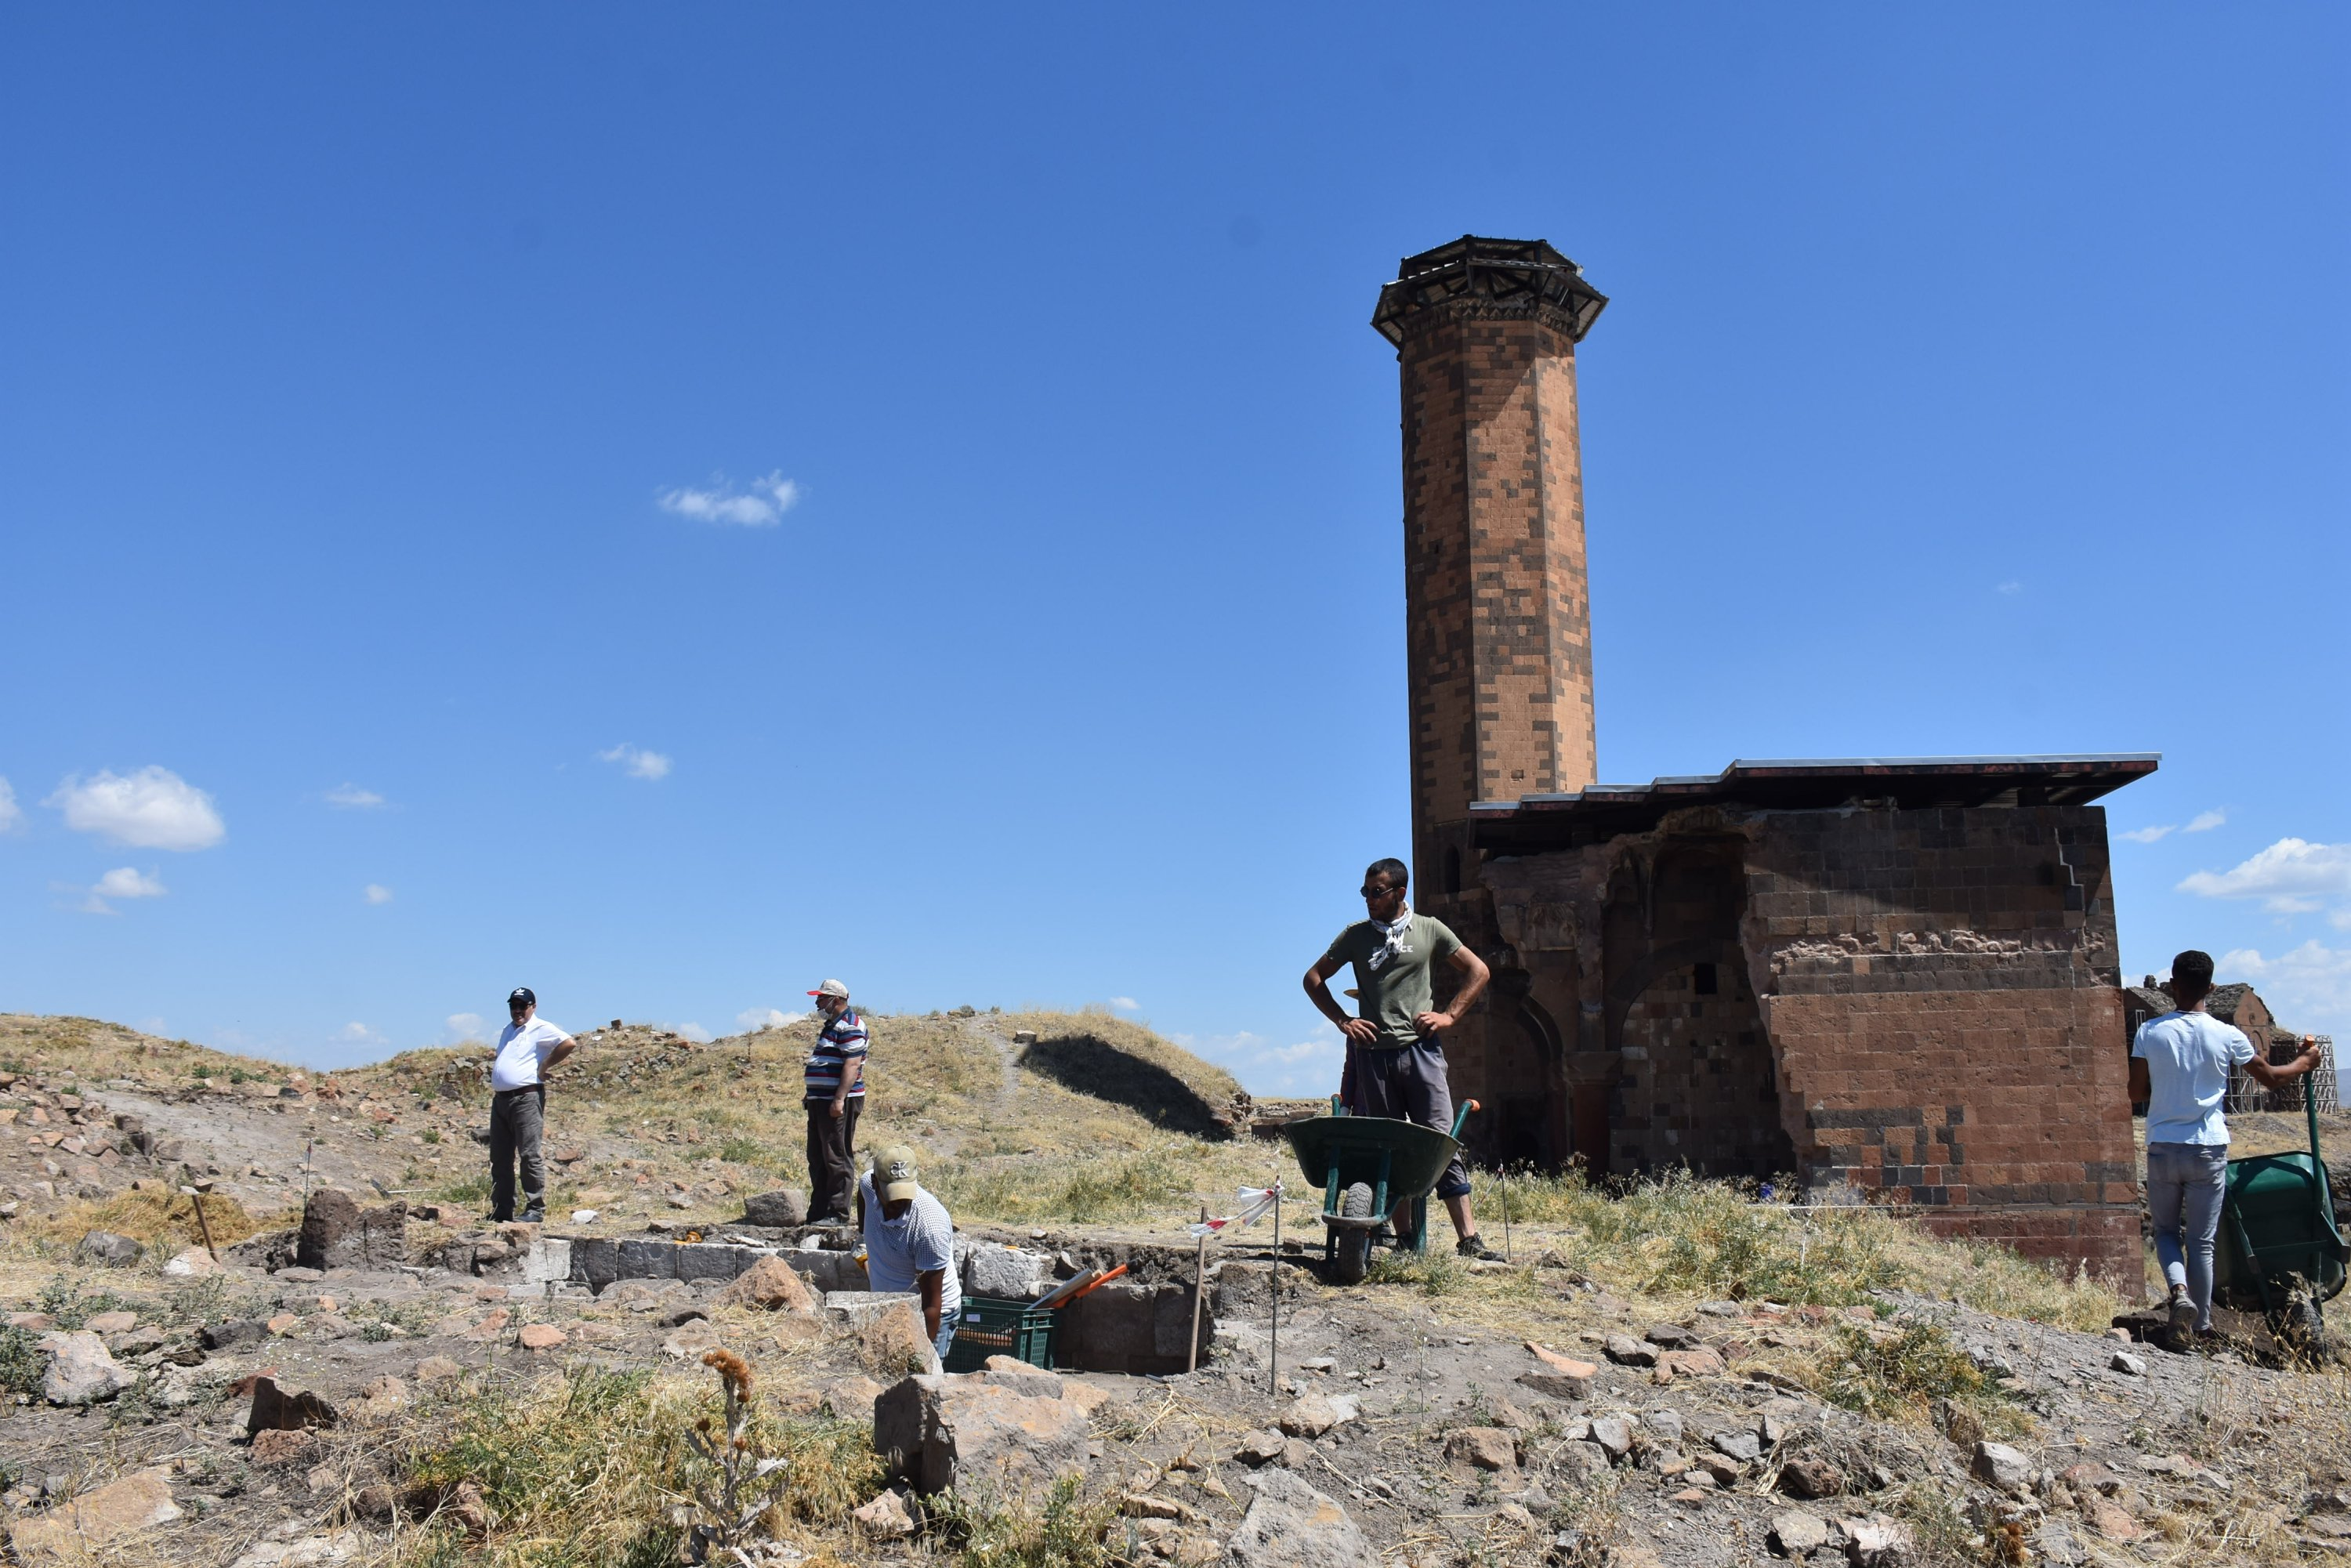 The excavation site around Ebu'l Manuçehr Mosque, Kars, eastern Turkey, Aug. 10, 2020. (AA PHOTO)